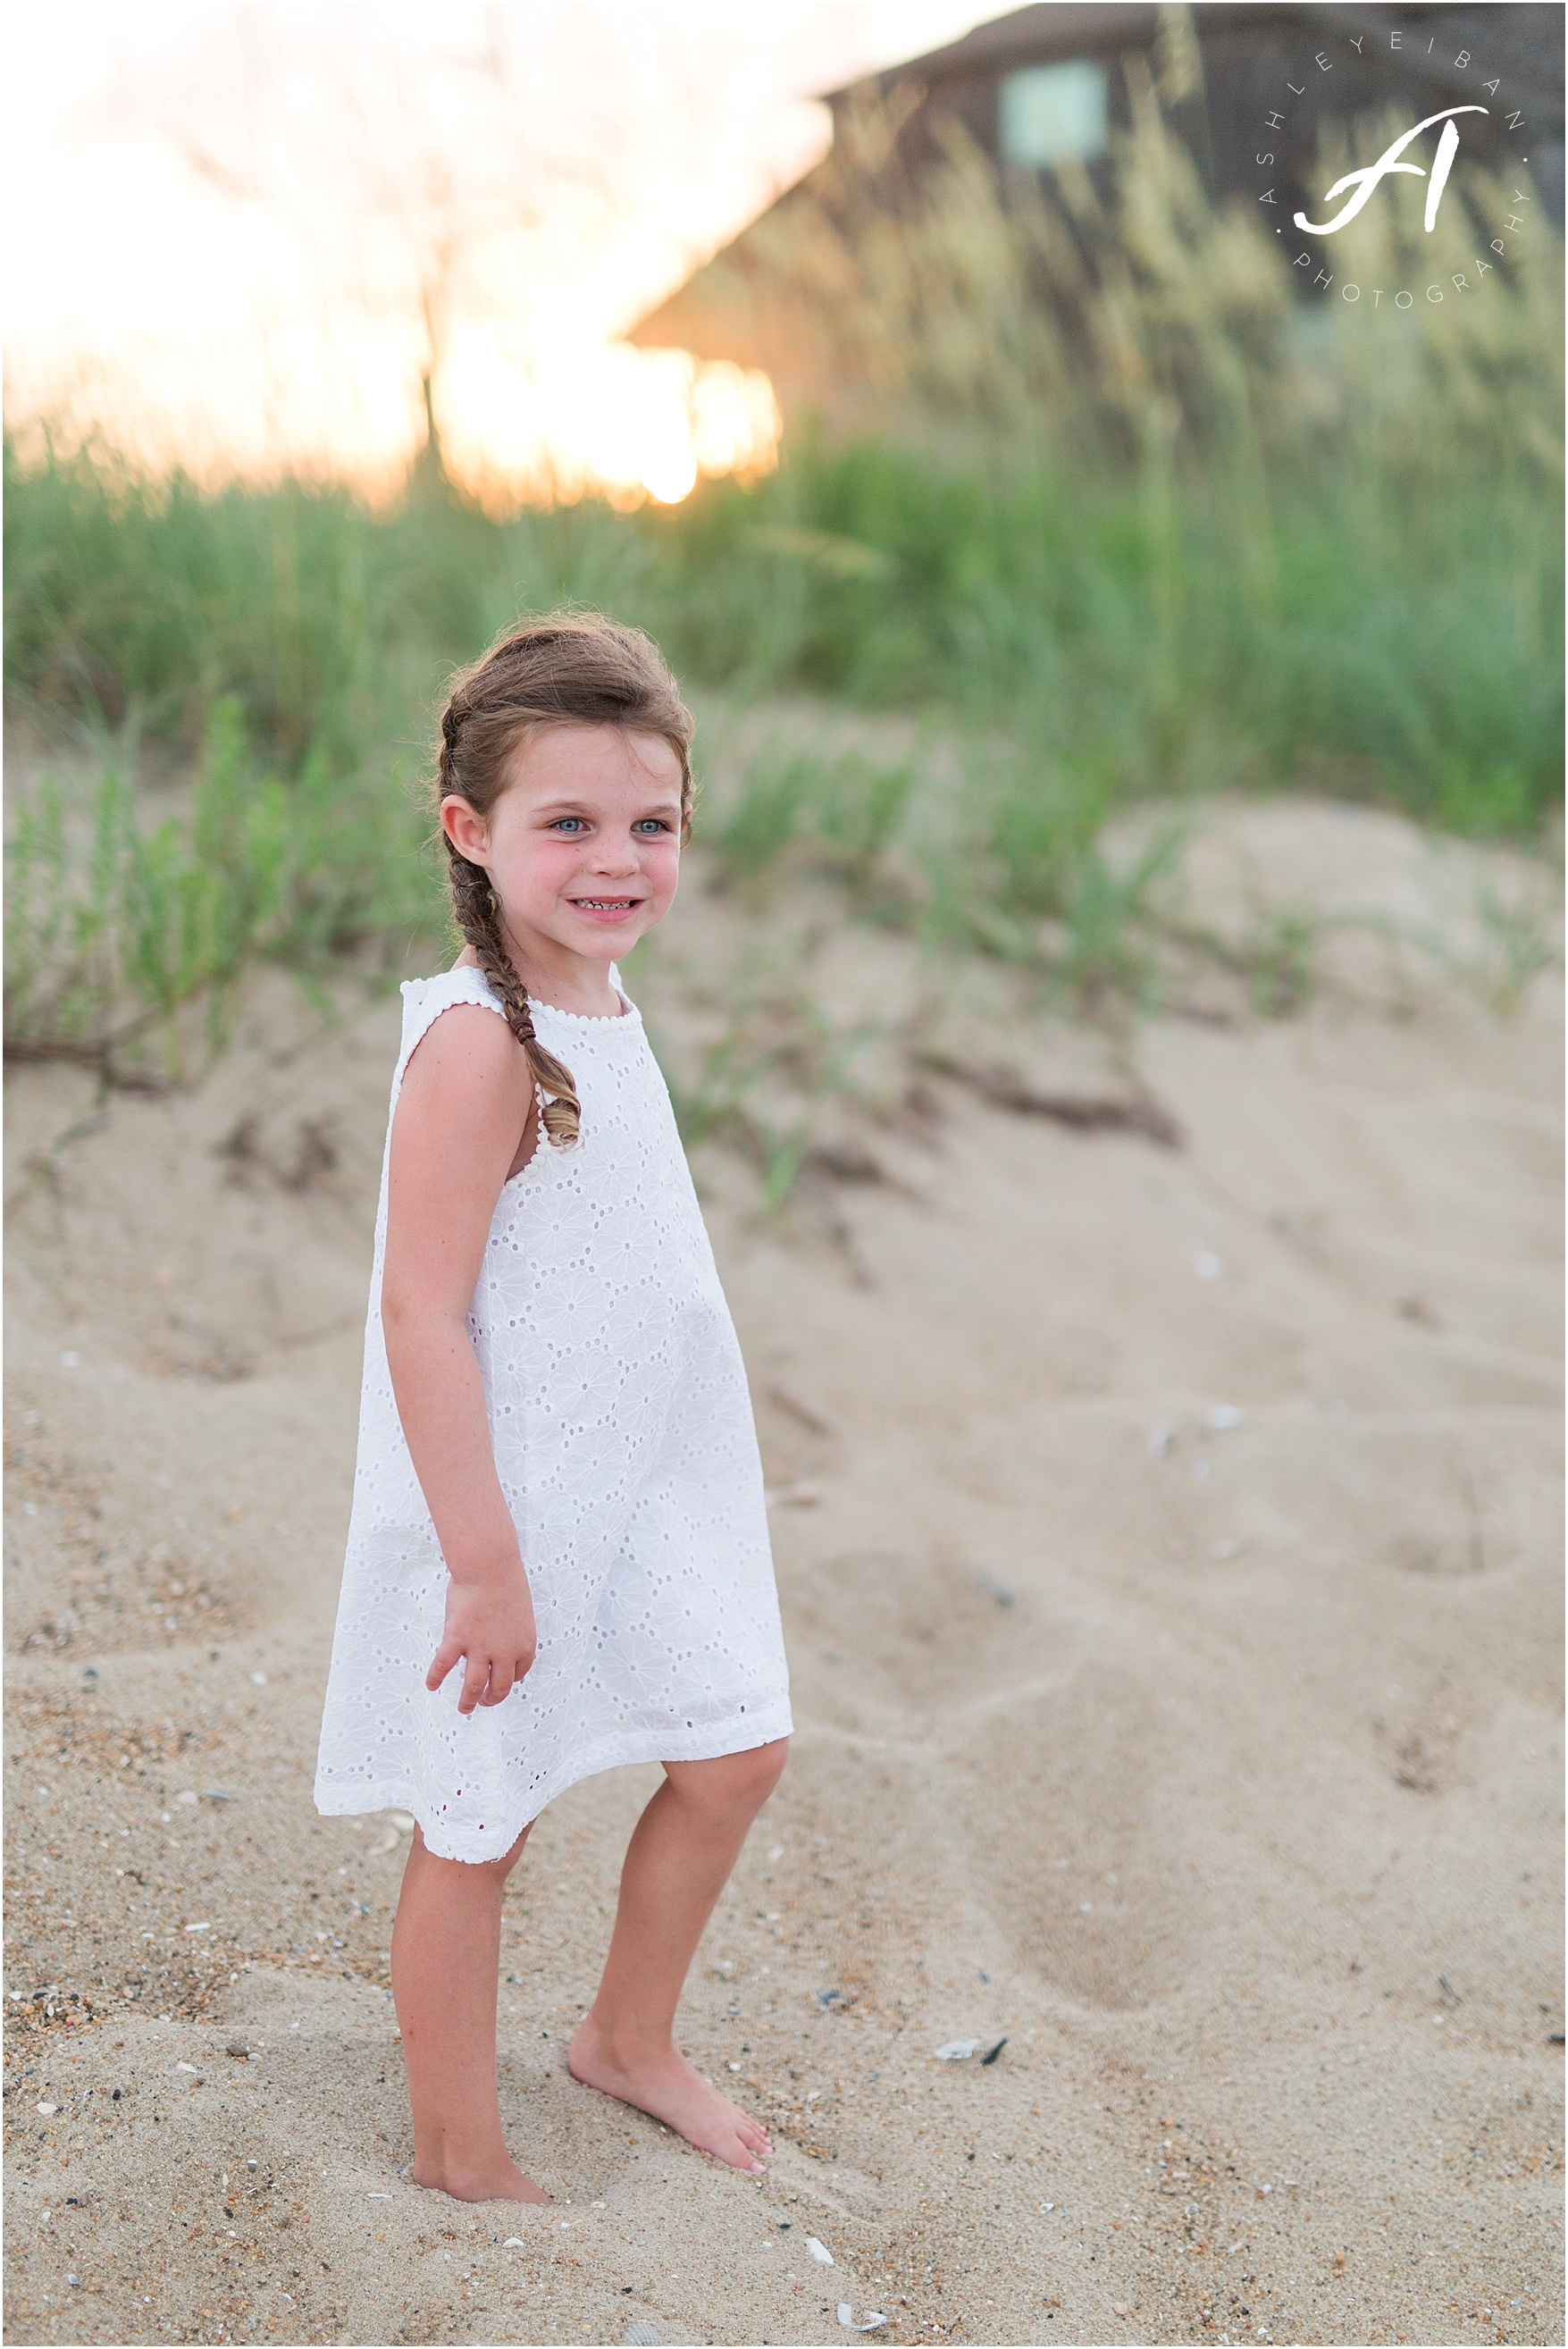 Outer Banks Wedding and Family Photographer || Ashley Eiban Photography || www.ashleyeiban.com